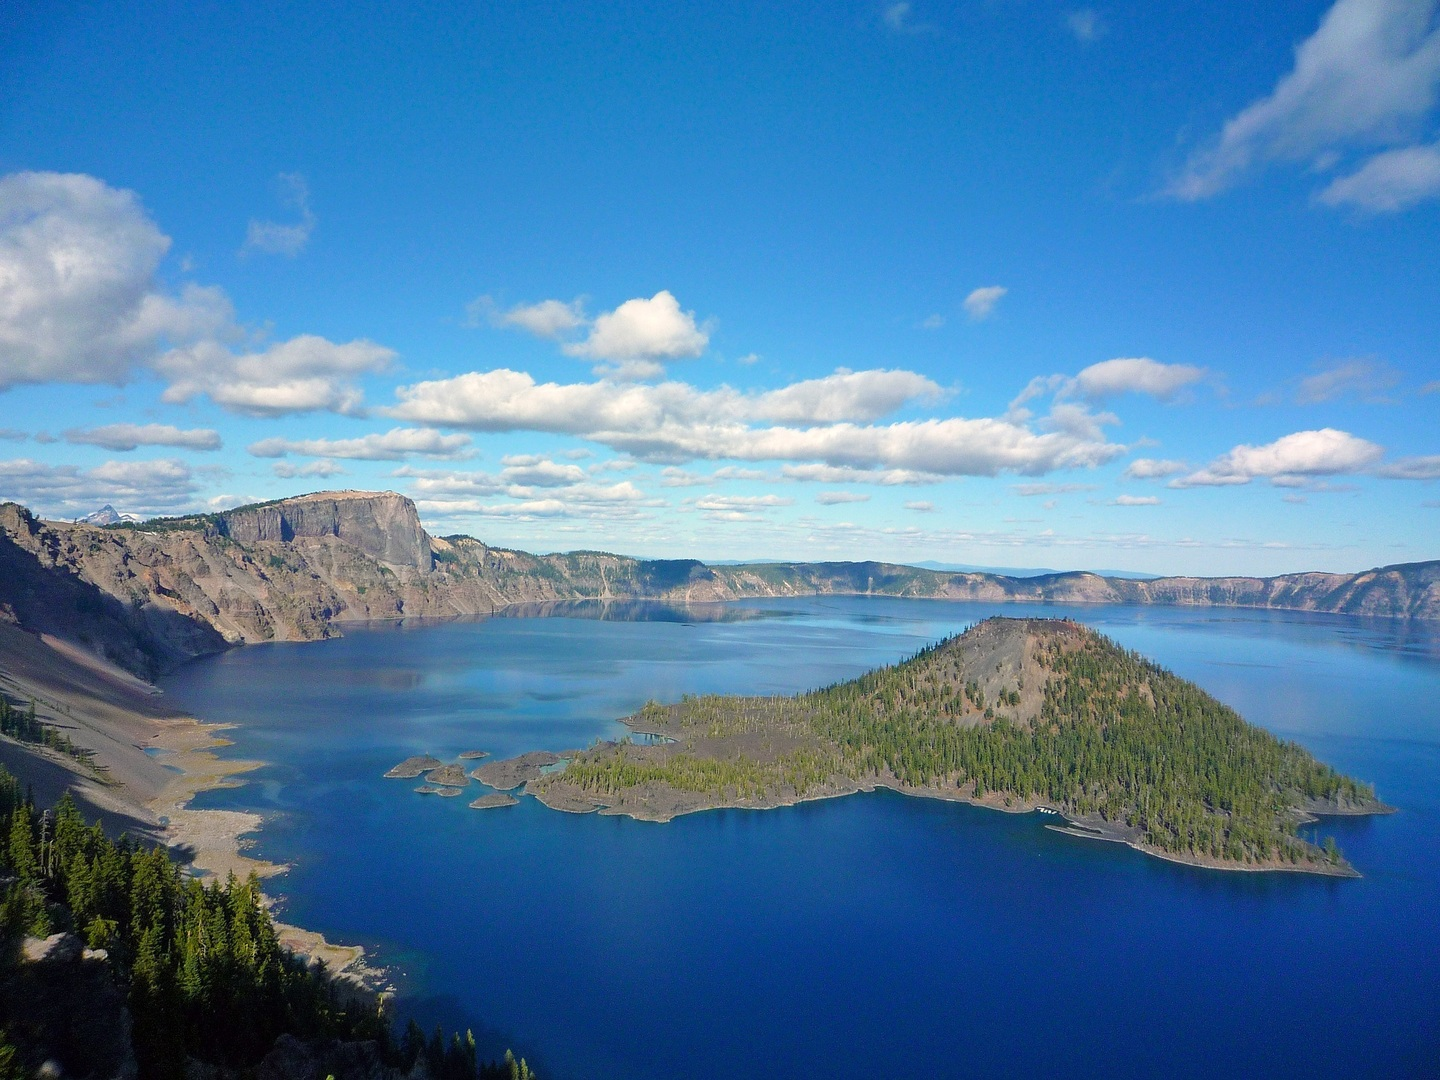 Crater Lake National Park - Top Go-To Place in Oregon to Explore Its Rich Culture and Scenic Beauty